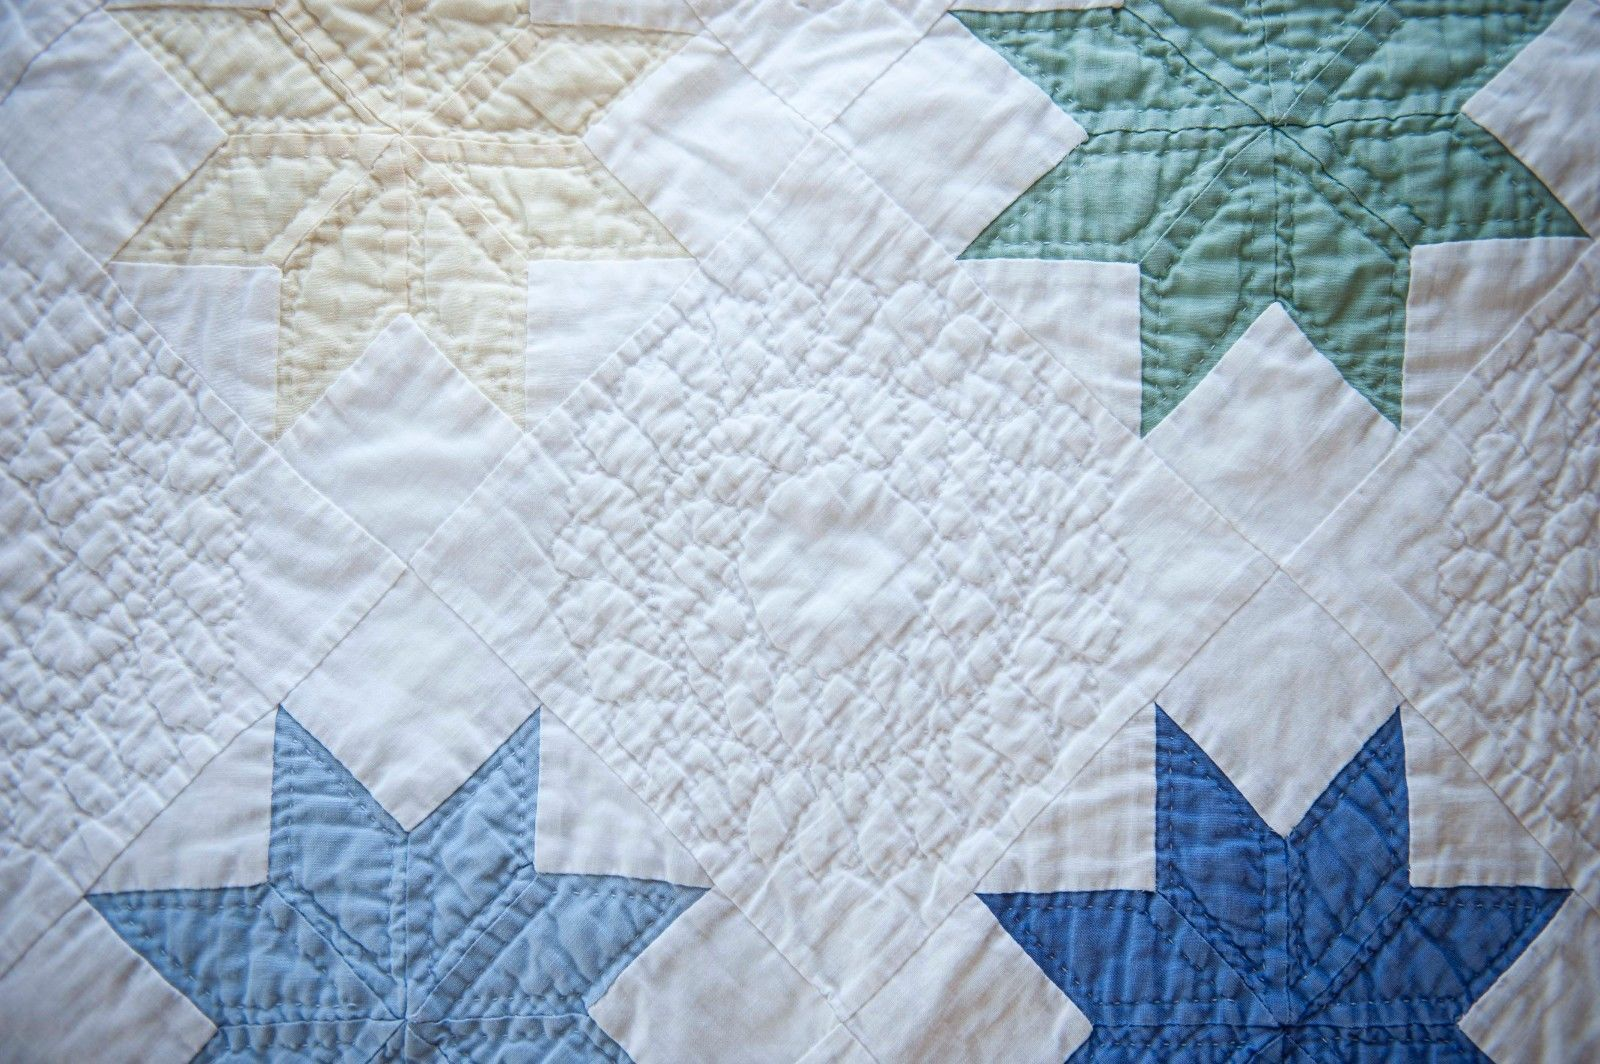 Handmade Star Quilt with Feathered Wreaths Hand Pieced Hand Quilted | eBay